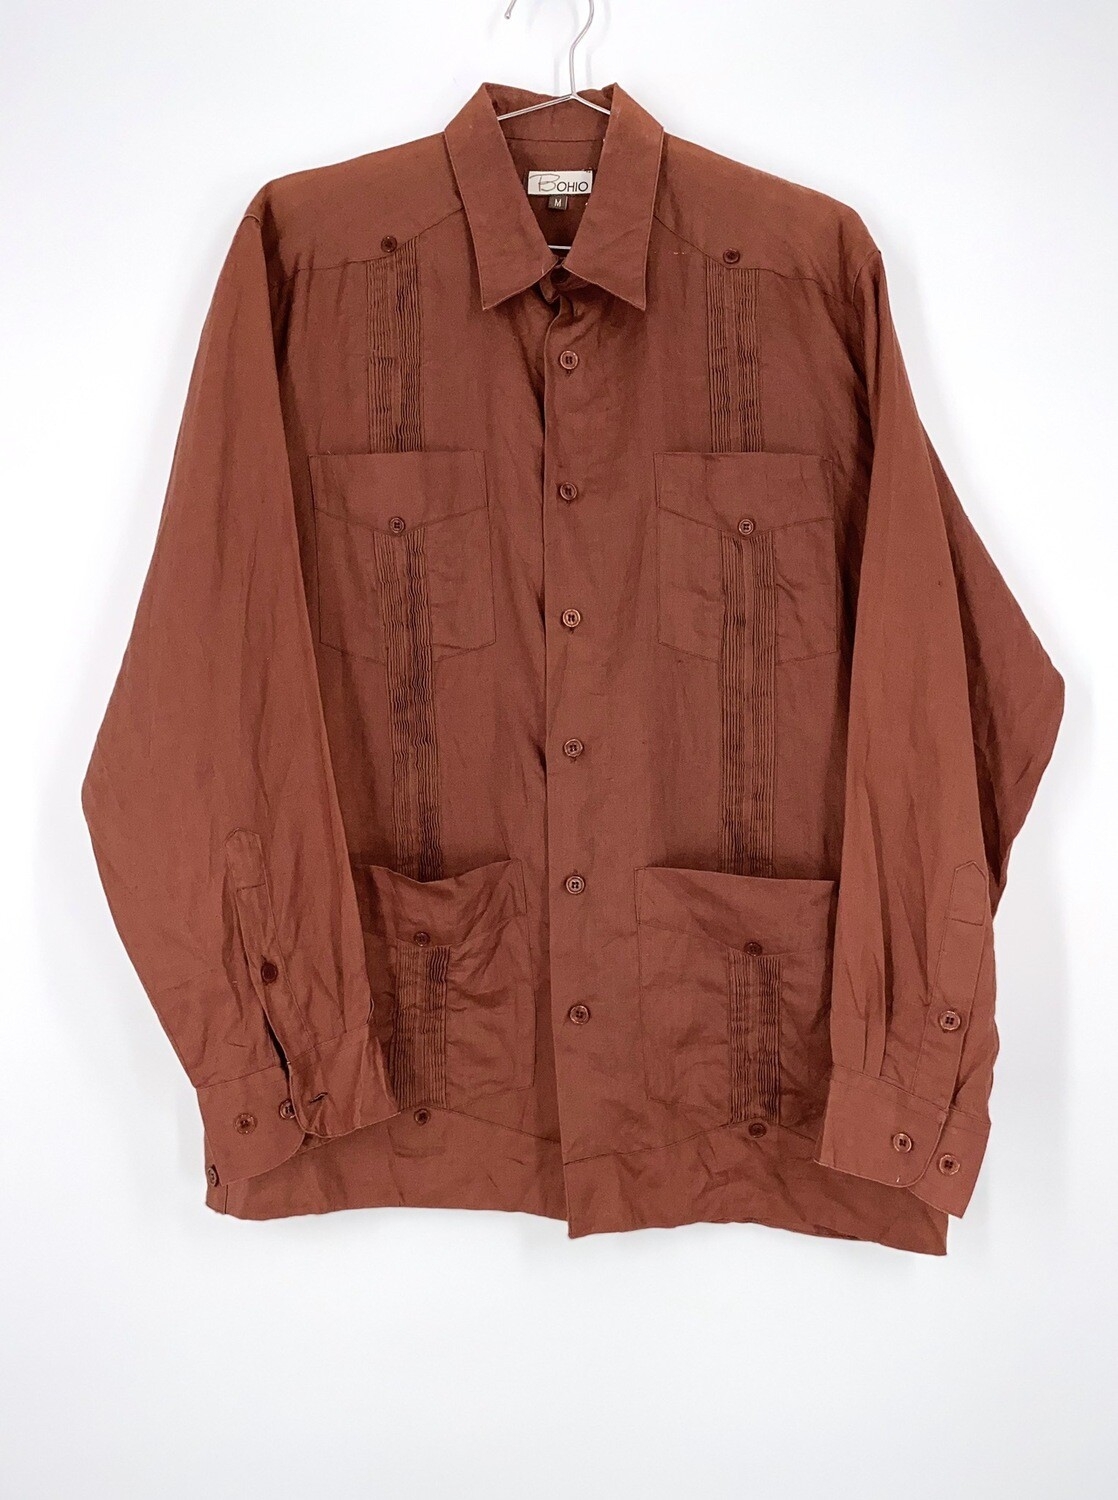 Rust Colored Button Up Size M